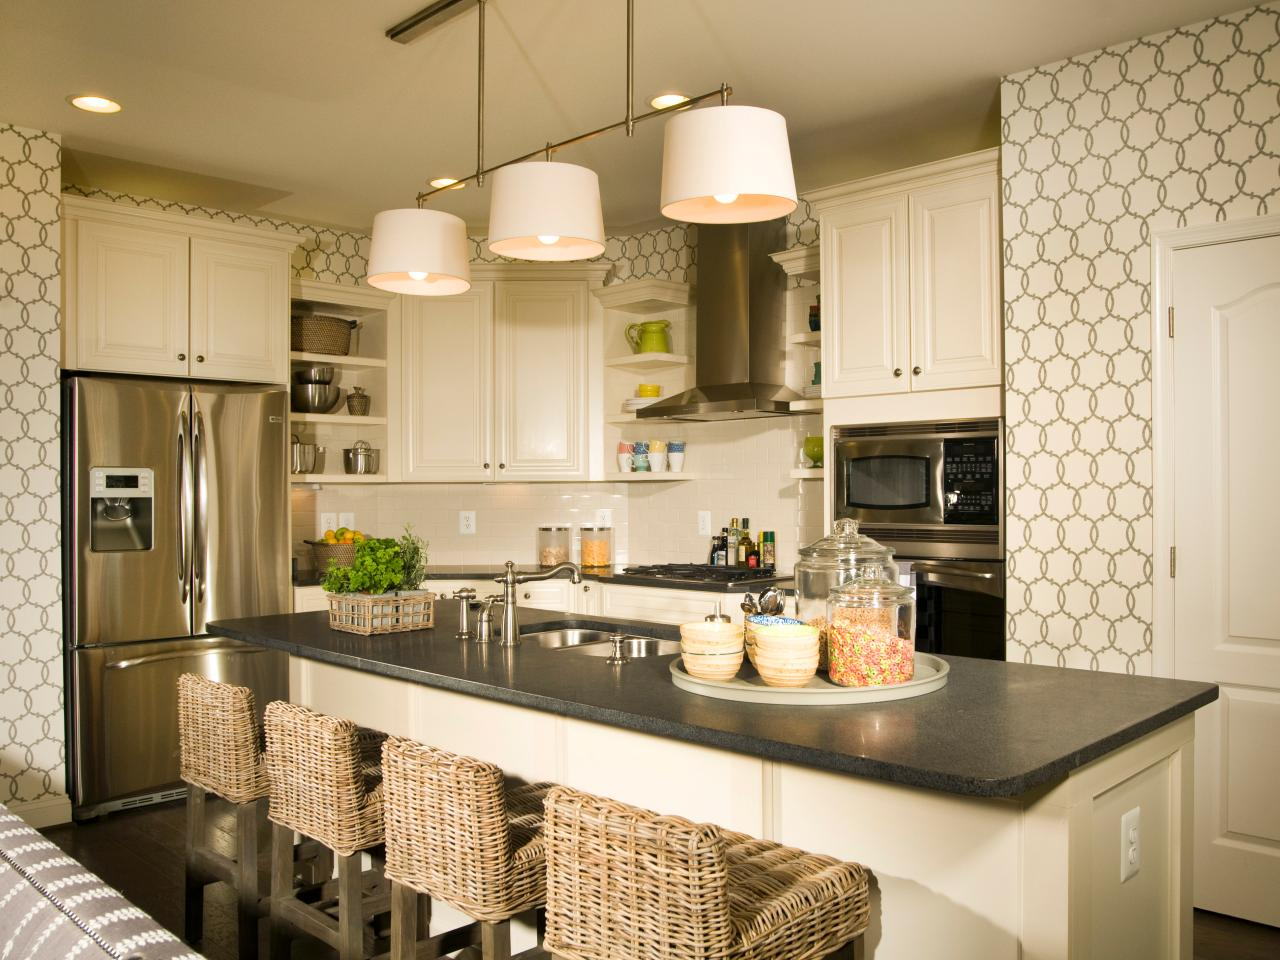 Black And White Kitchen Wallpaper Kitchen Category 1280x960